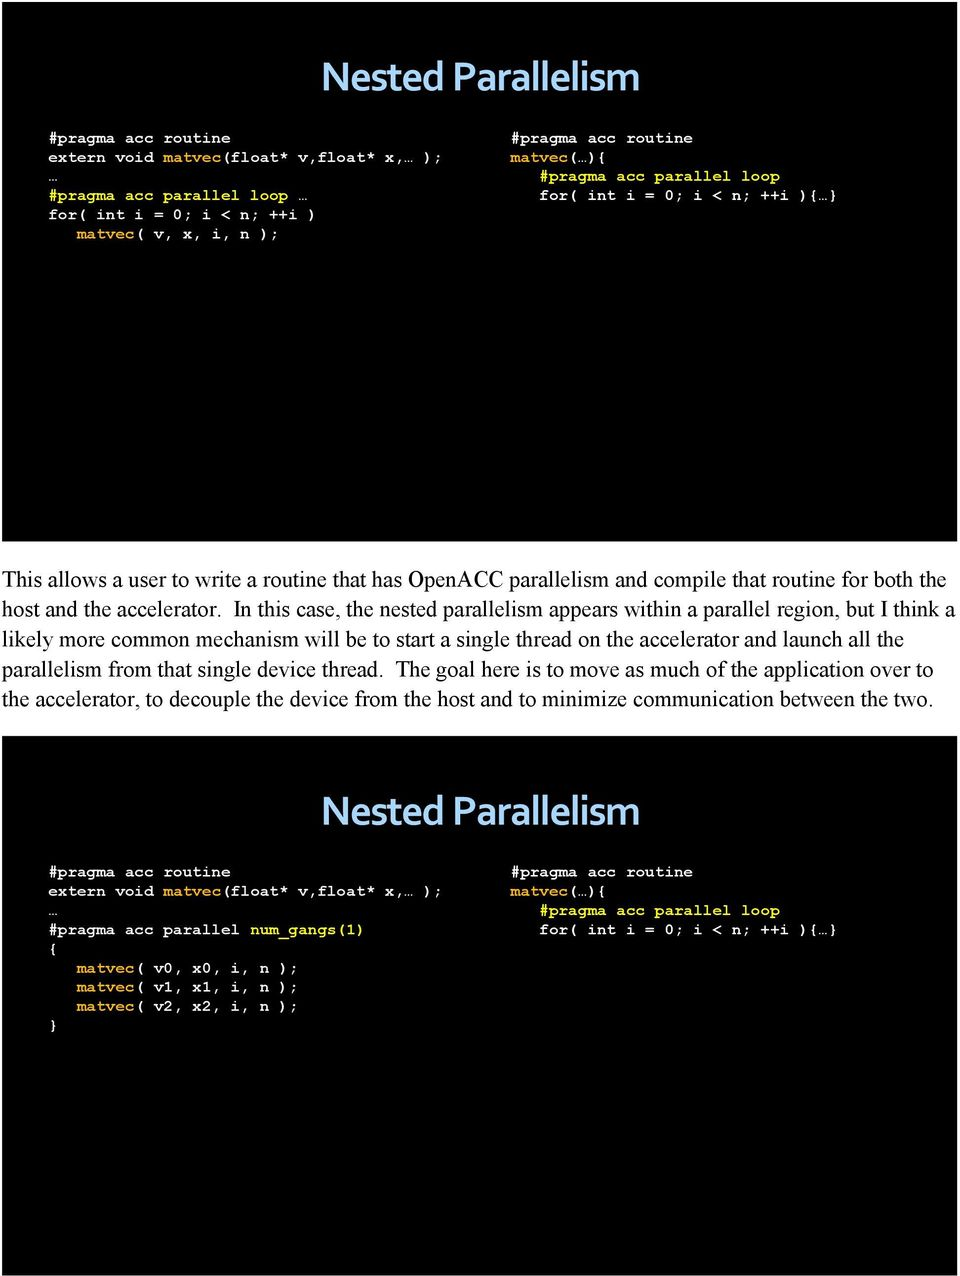 In this case, the nested parallelism appears within a parallel region, but I think a likely more common mechanism will be to start a single thread on the accelerator and launch all the parallelism